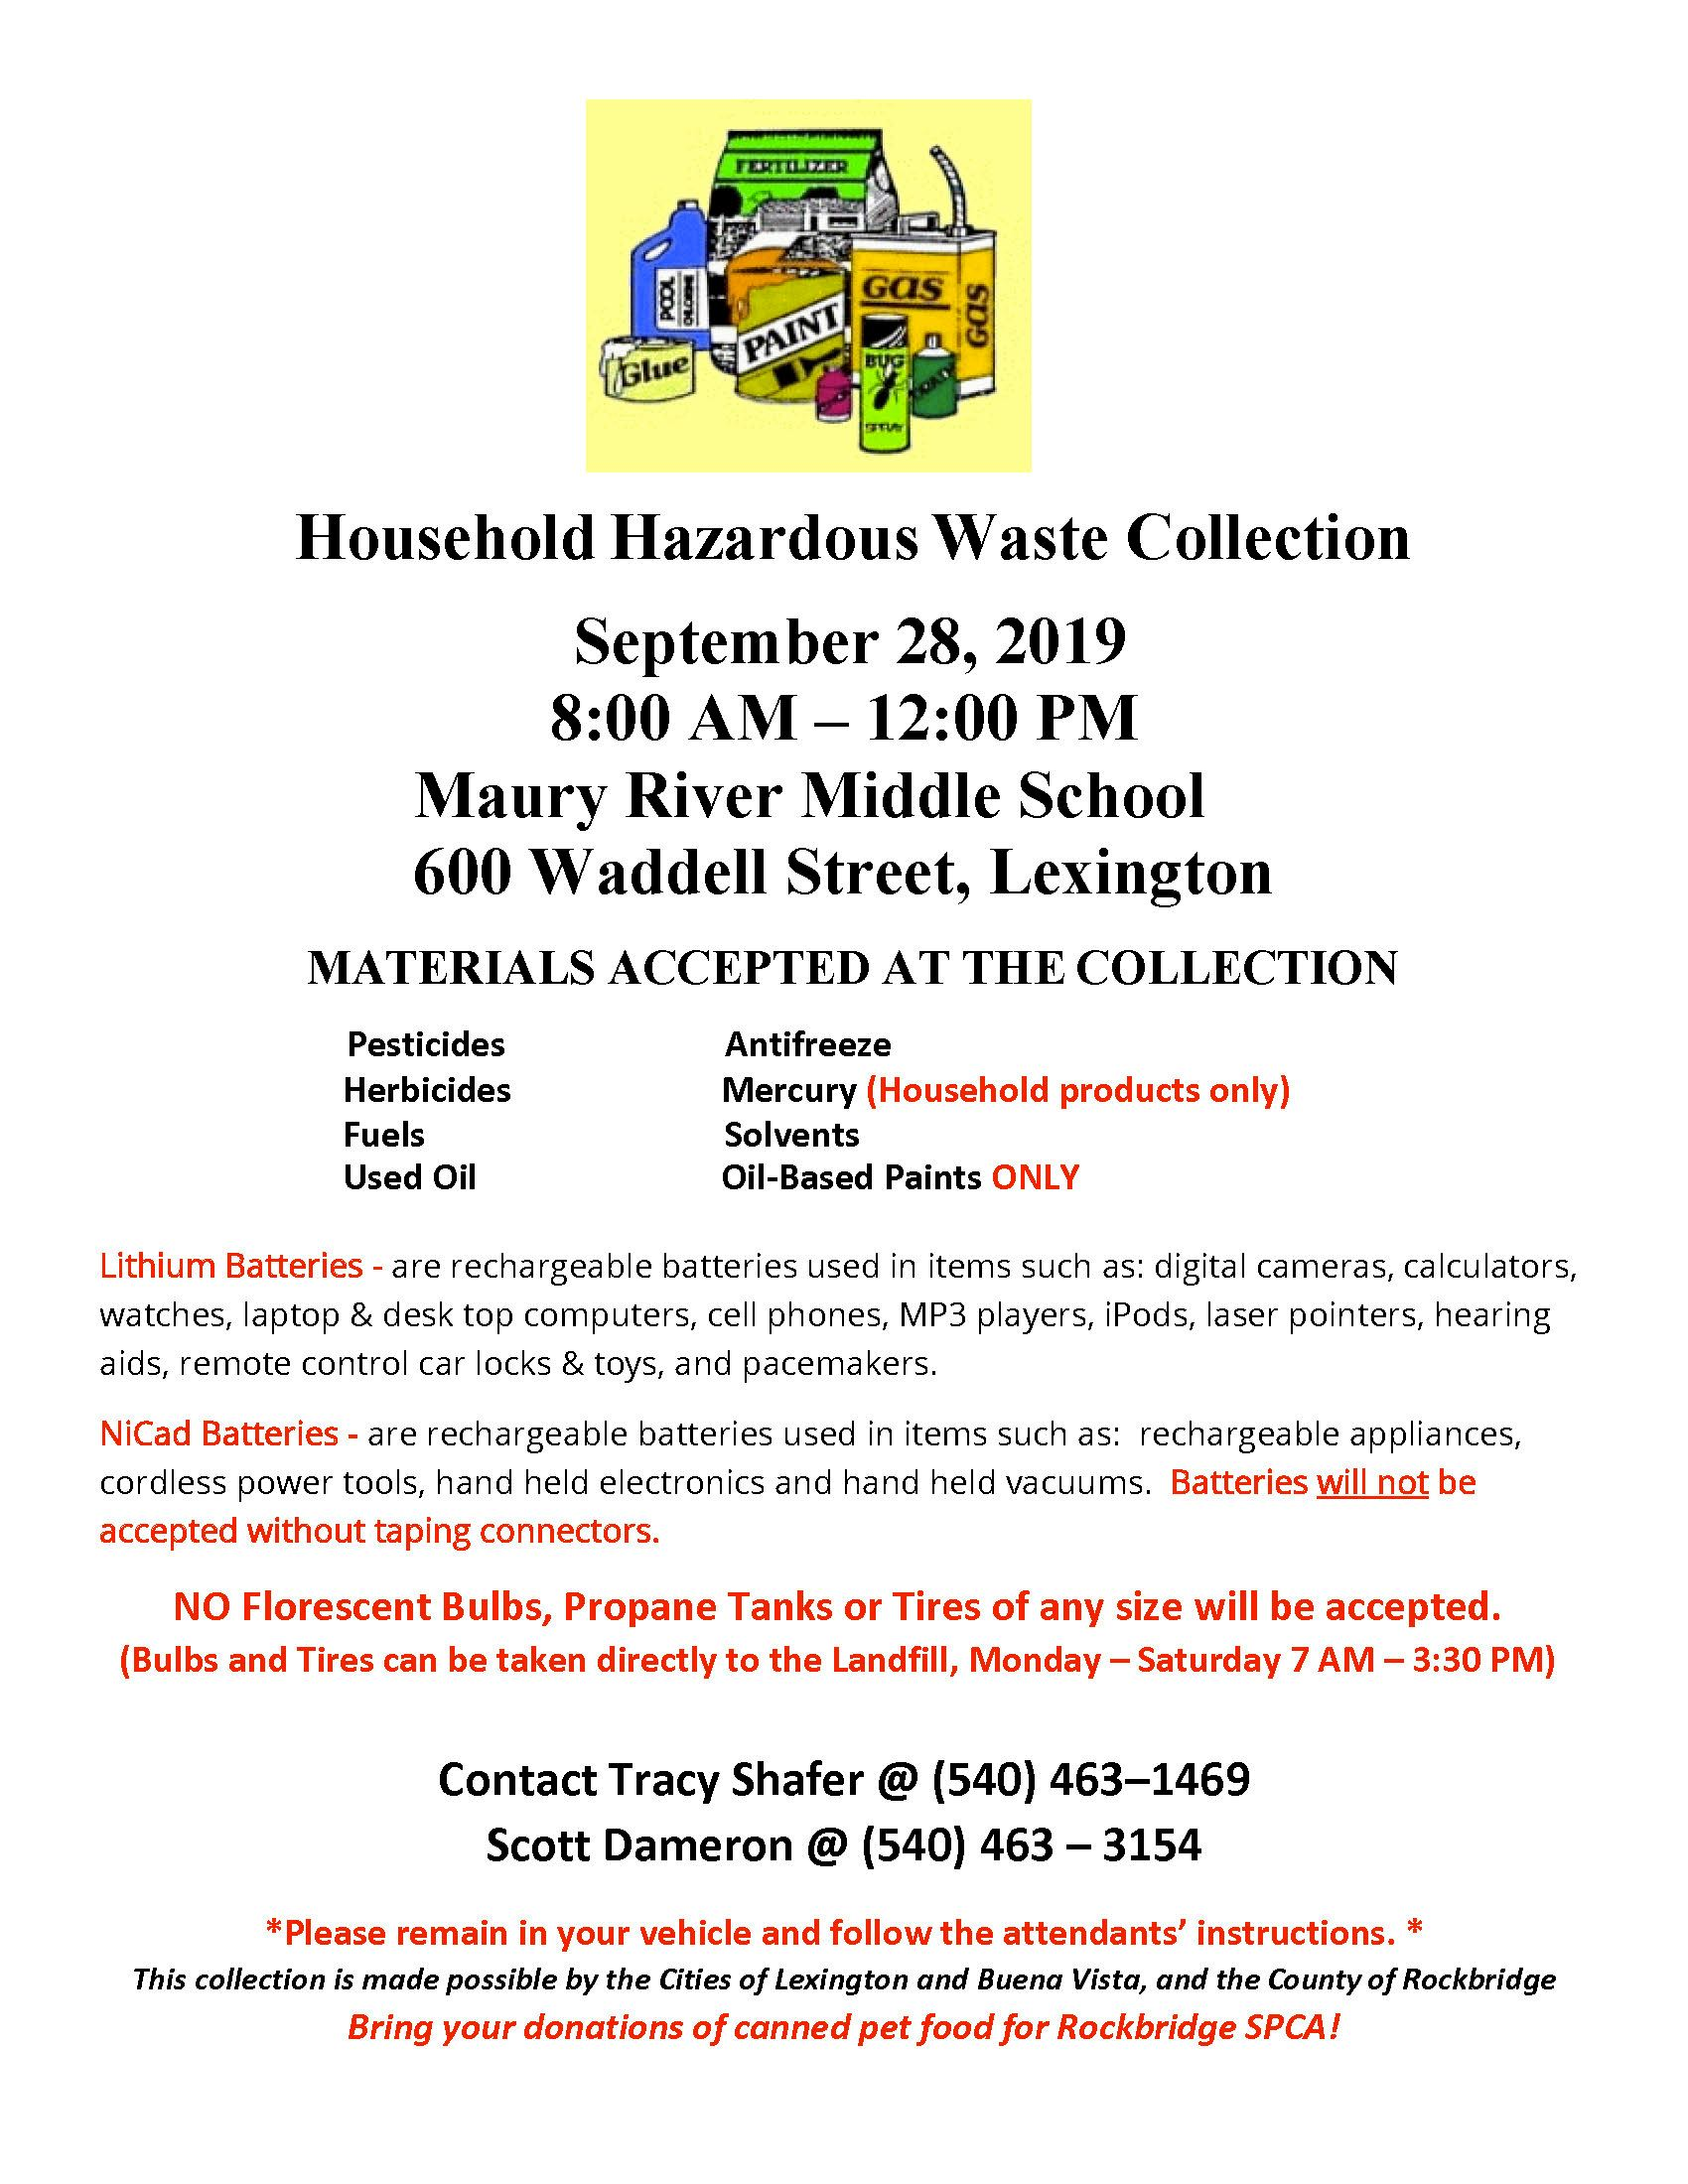 Household Hazardous Waste Collection 2019